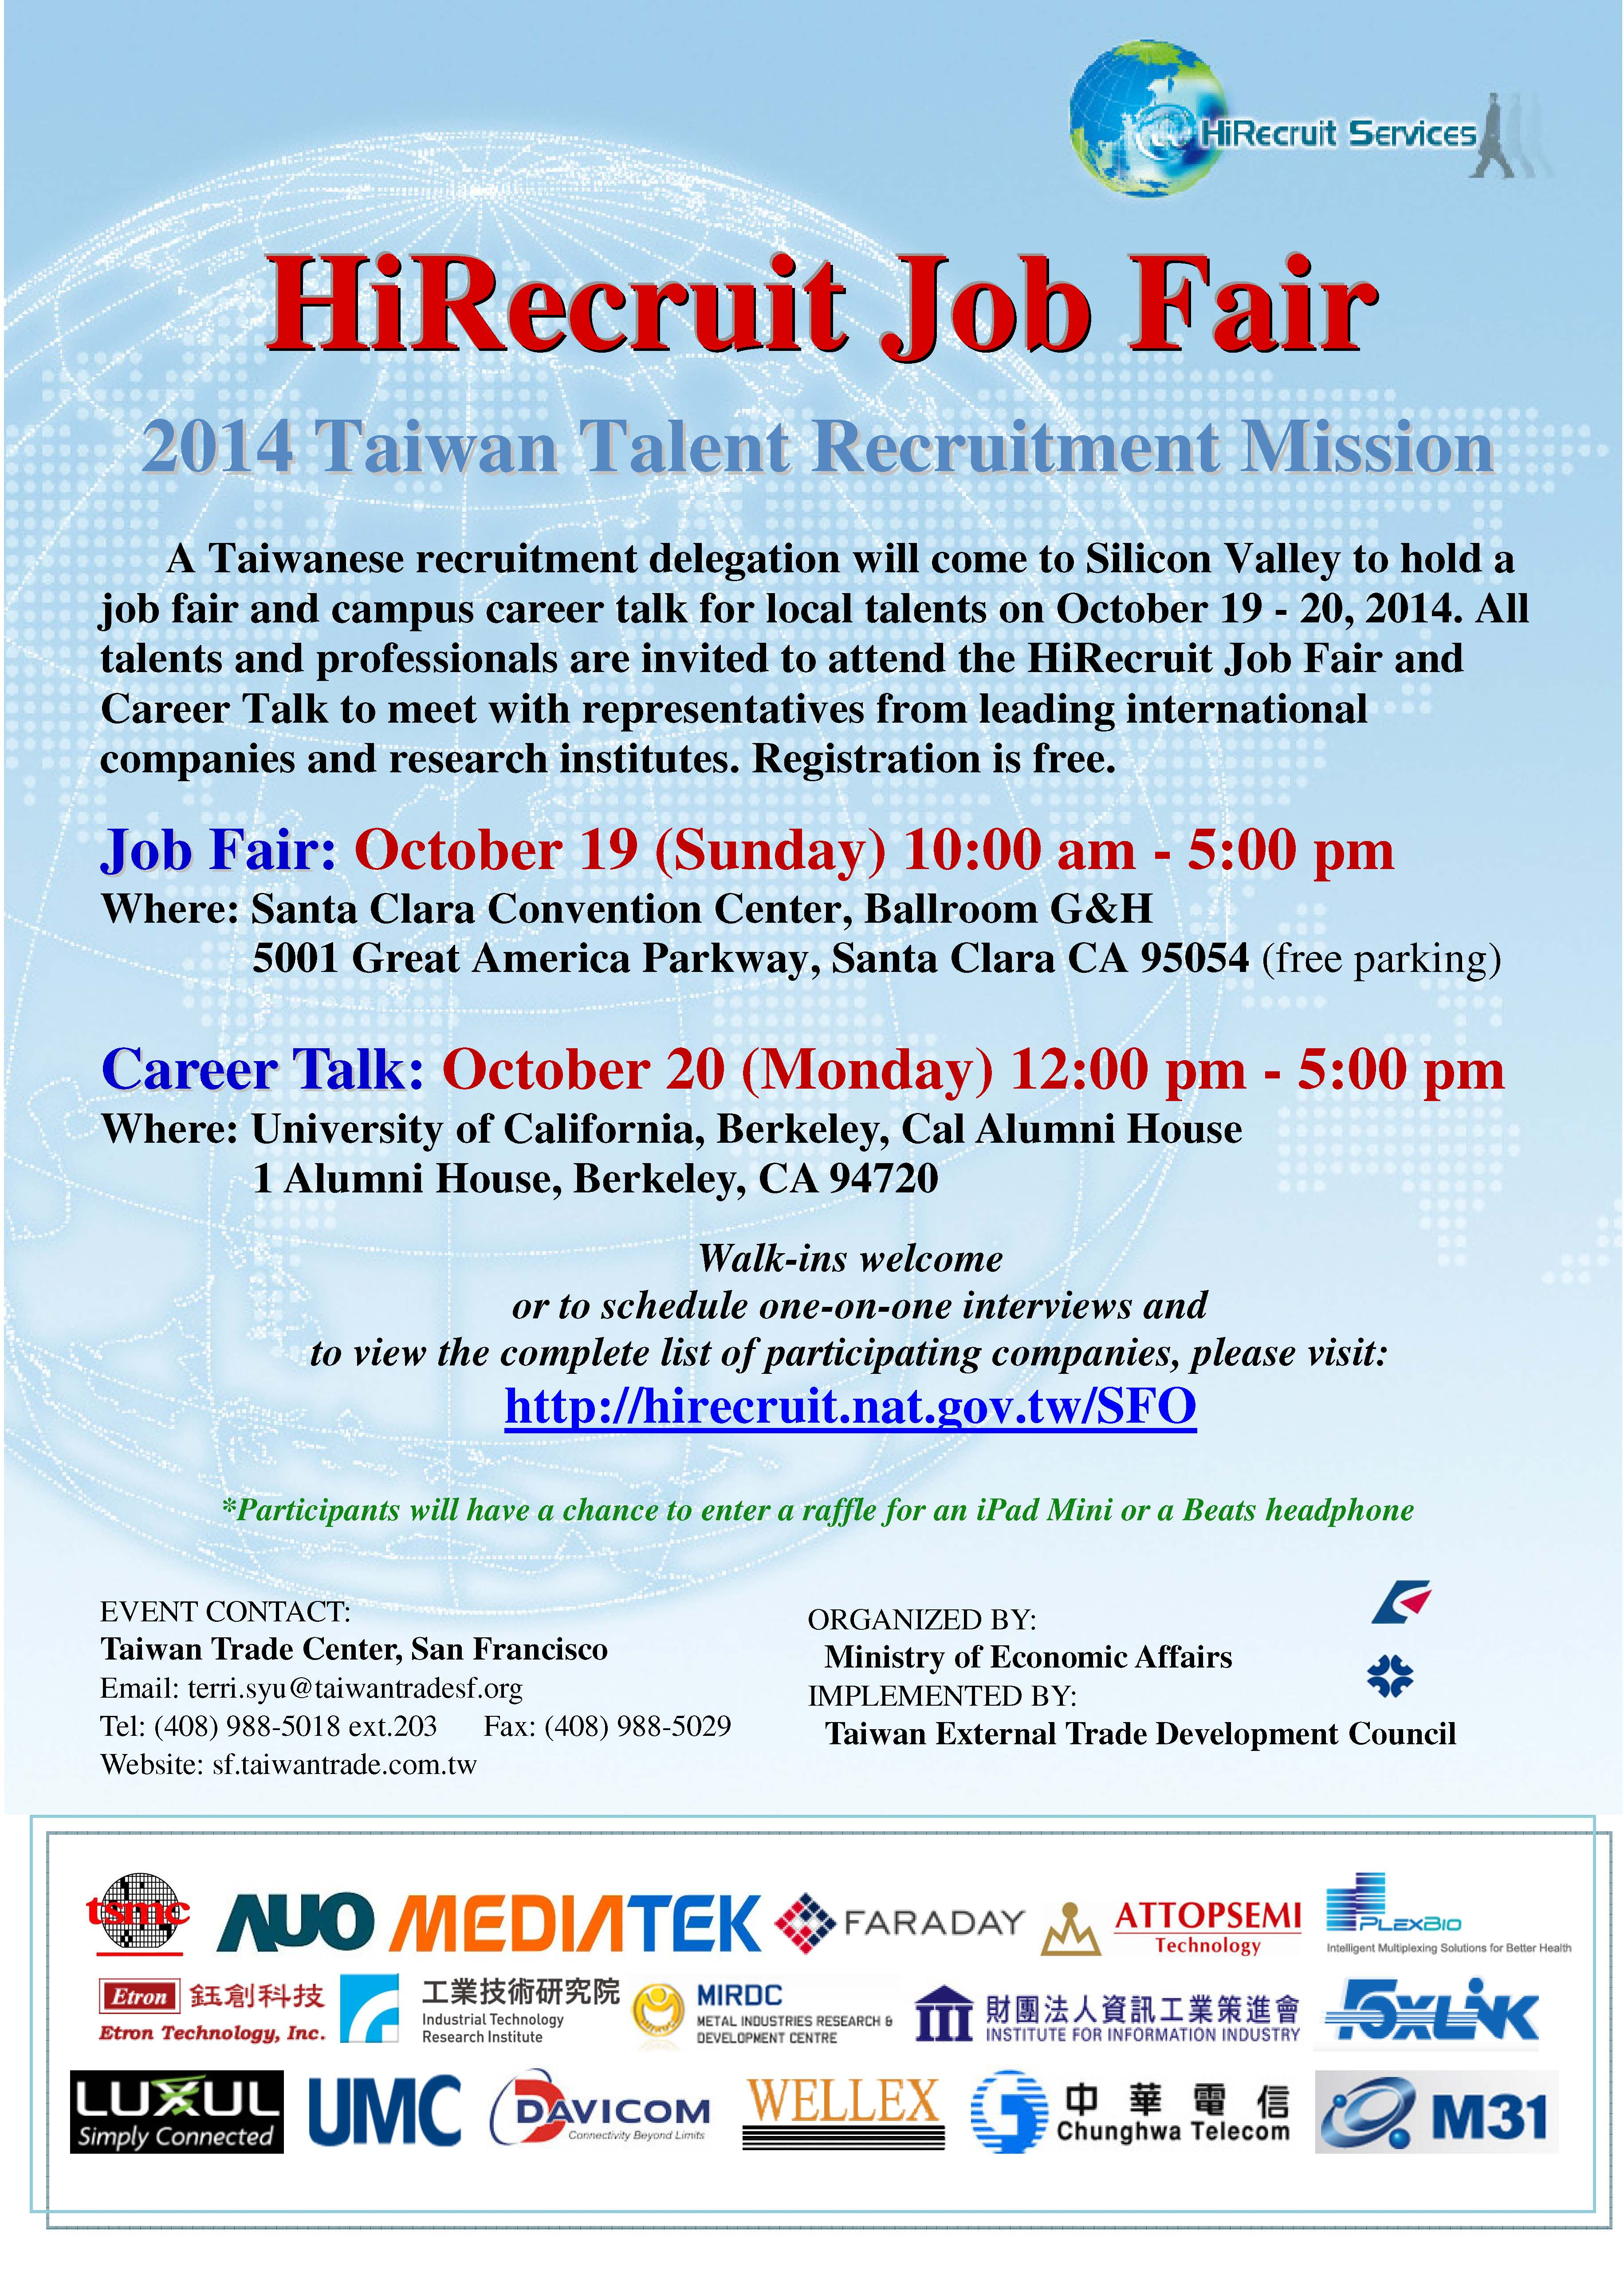 Taiwan Trade Center, San Francisco - 2014 HiRecruit Job Fair